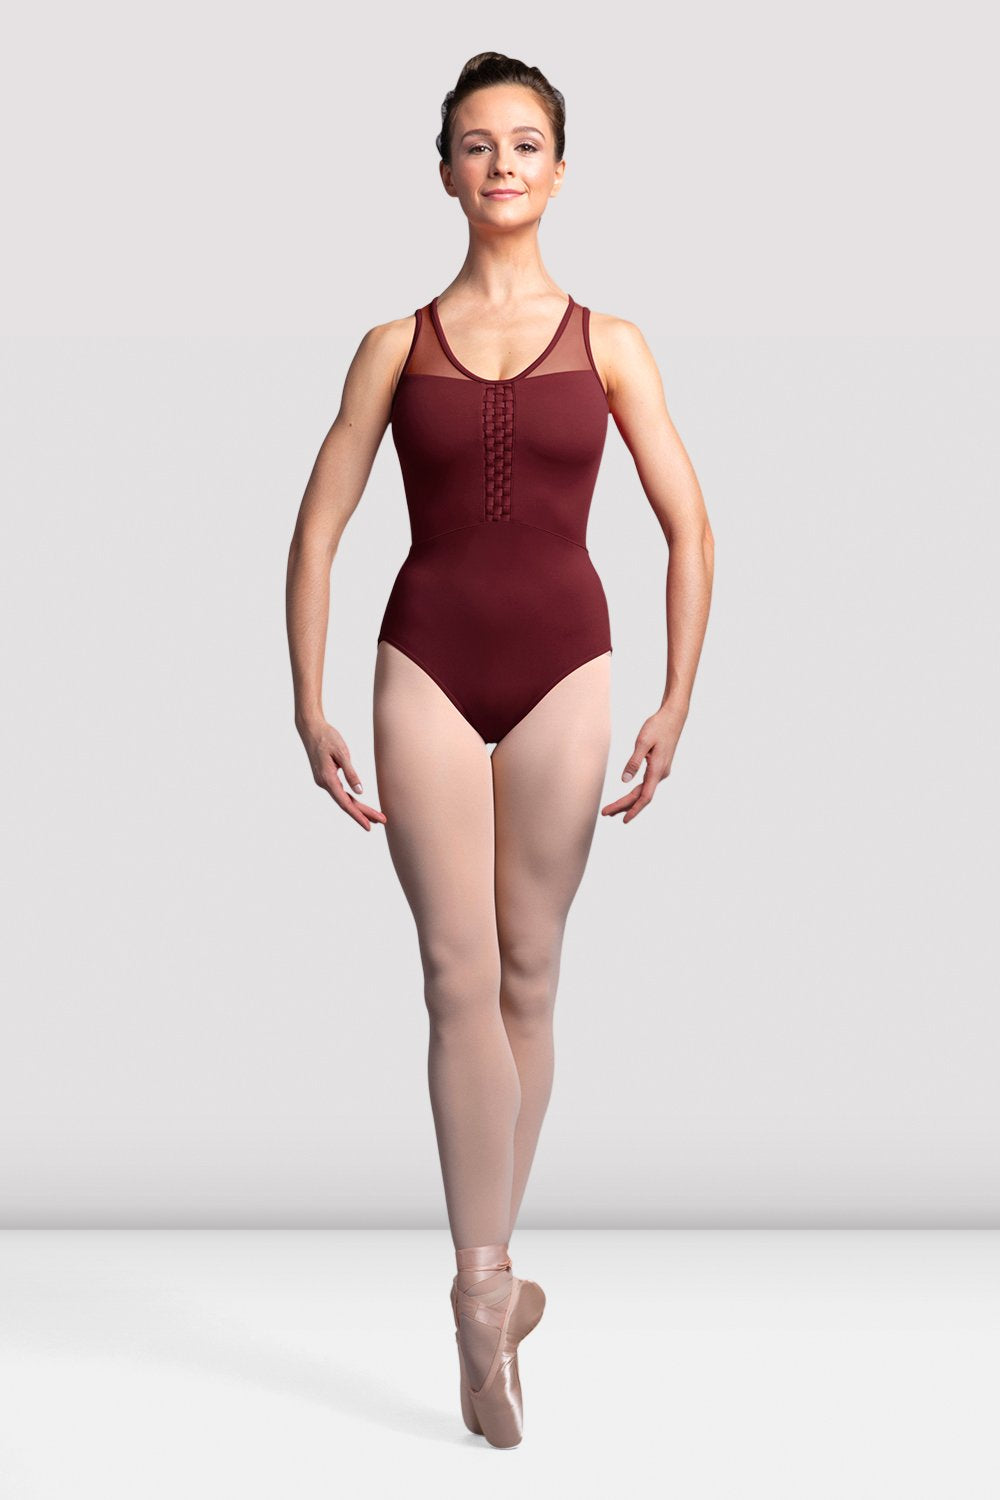 Ladies Amita Mesh Back Tank Leotard - BLOCH US